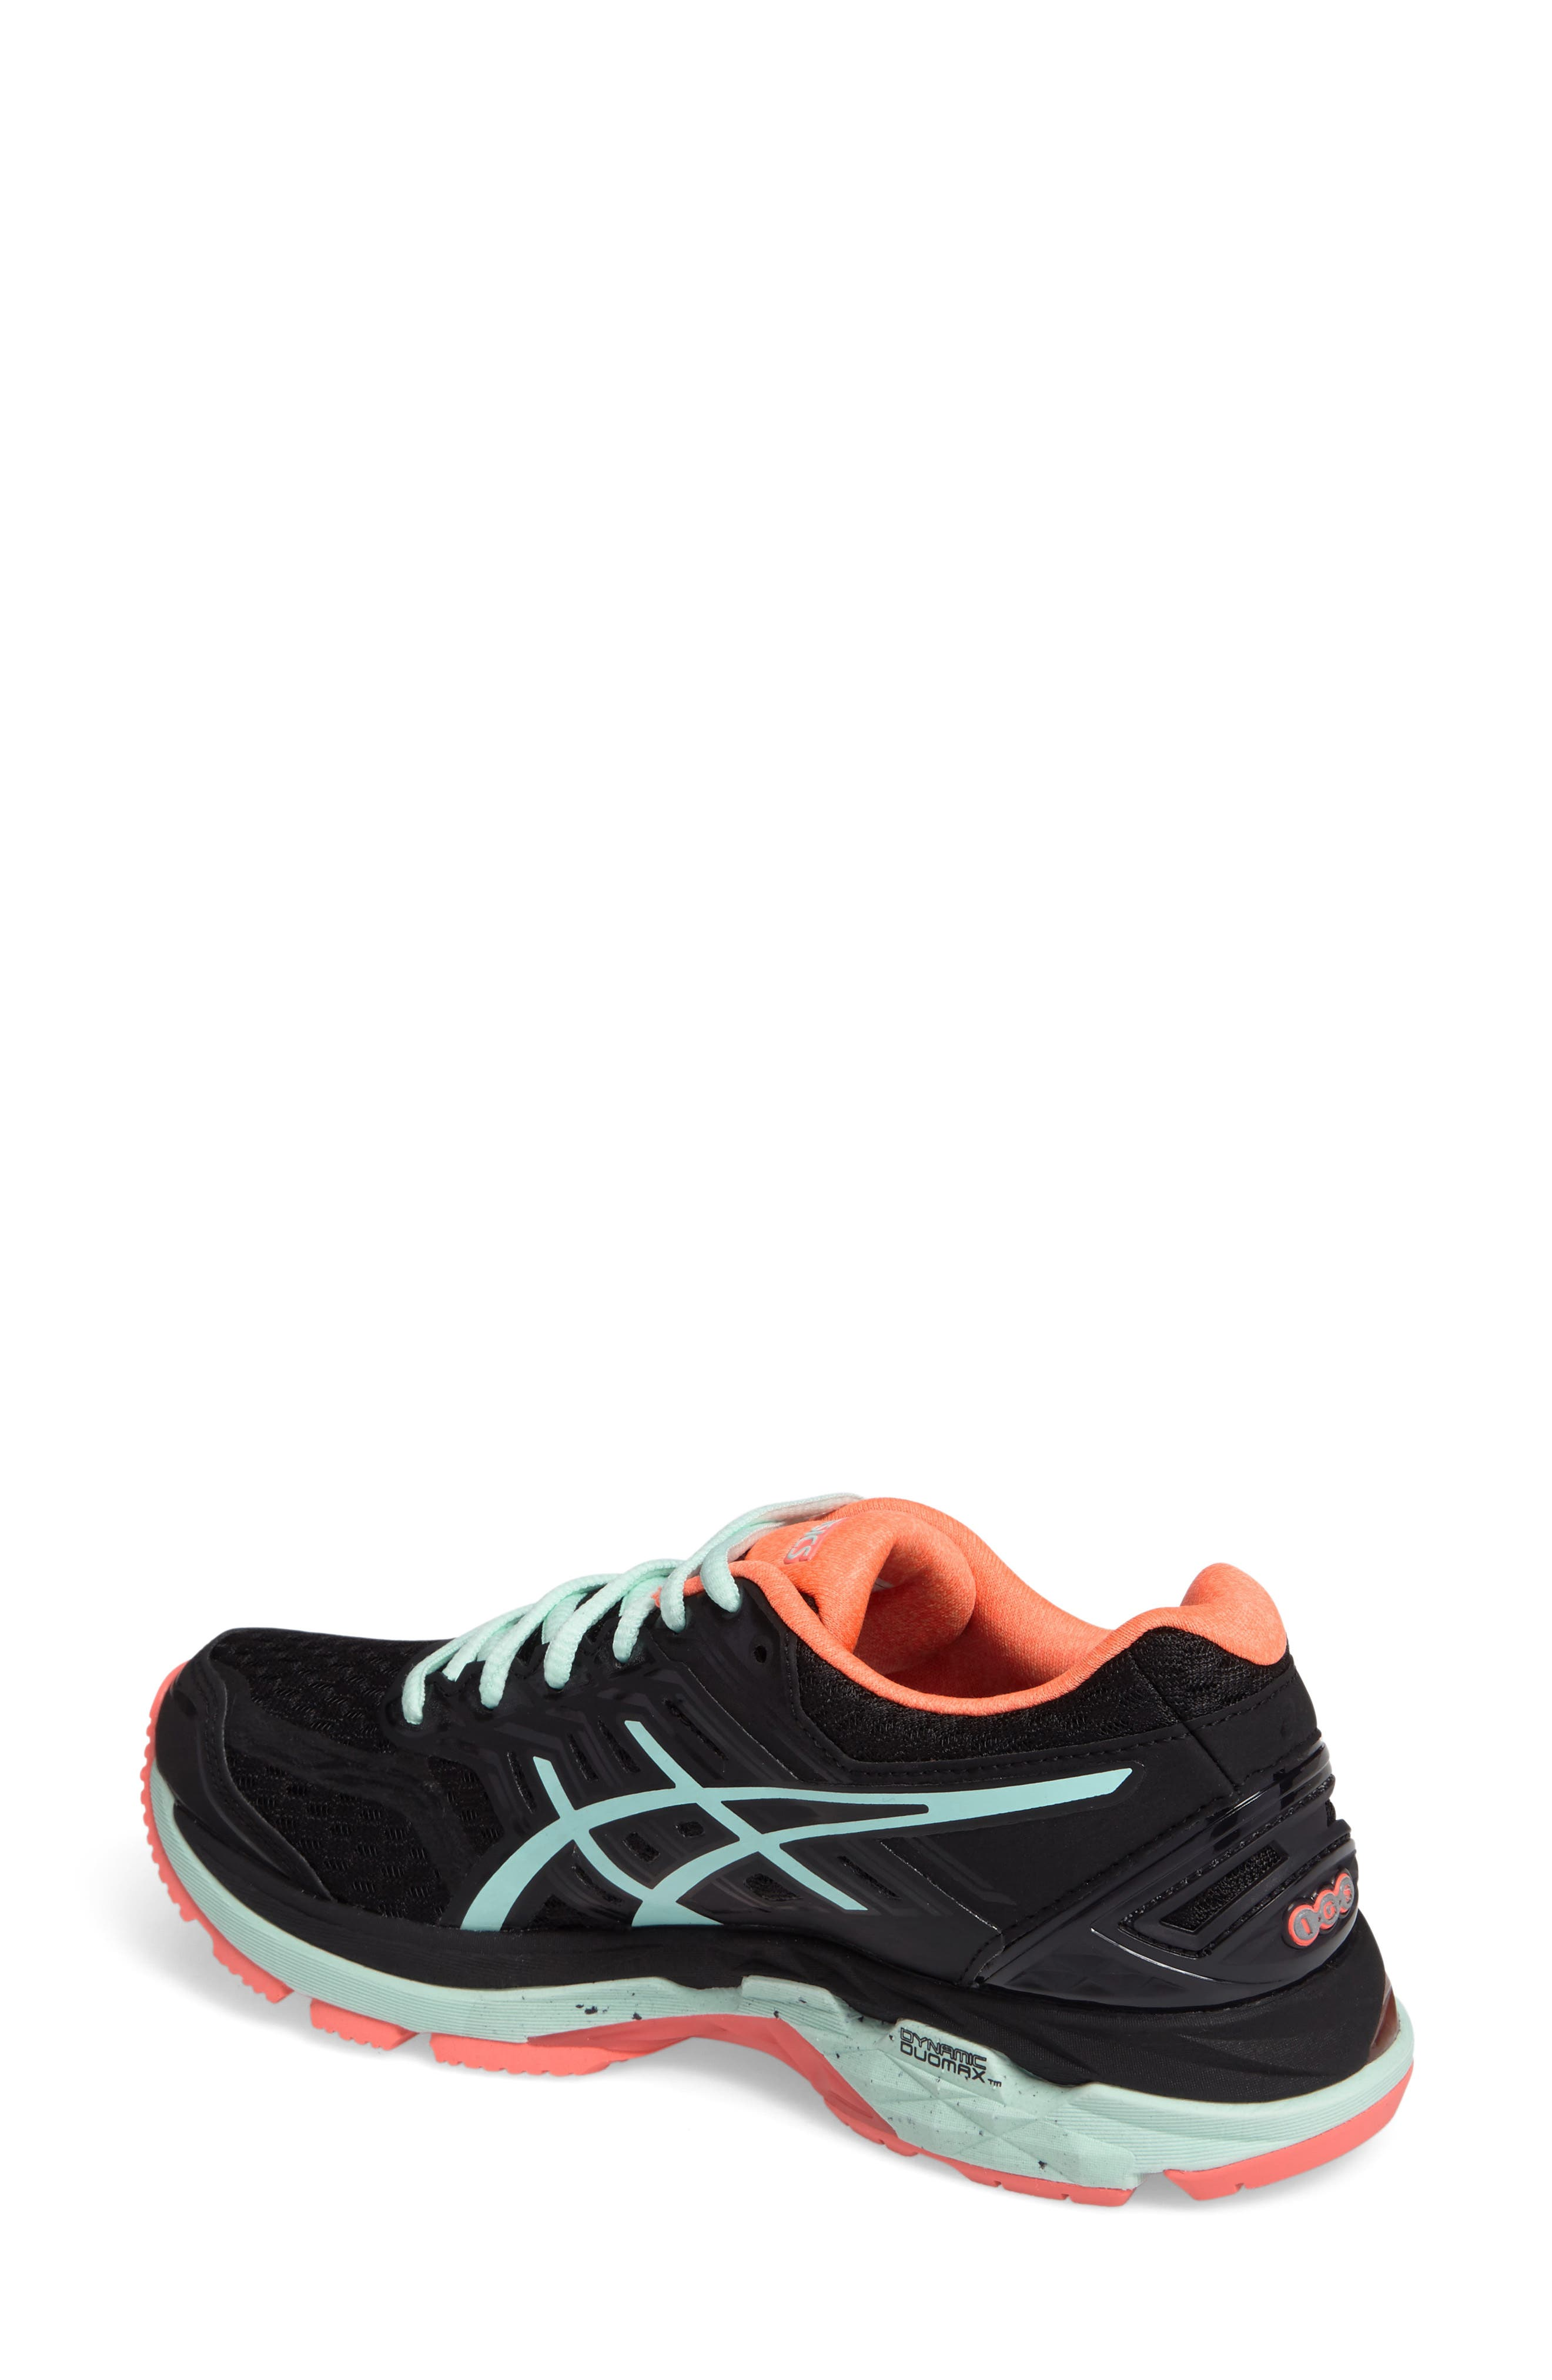 GT-2000 5 Running Shoe,                             Alternate thumbnail 2, color,                             008